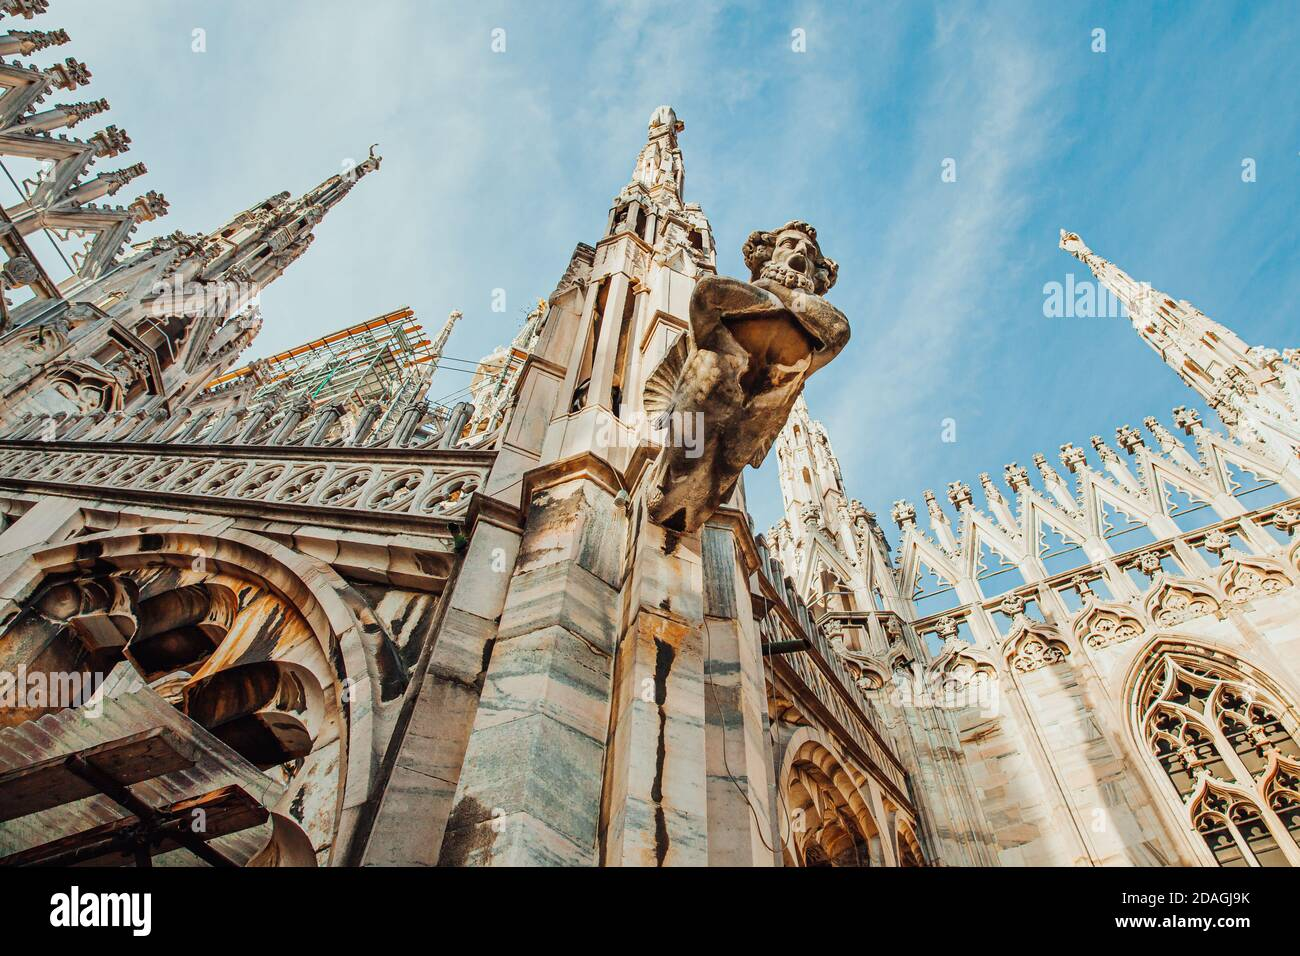 Roof of Milan Cathedral Duomo di Milano with Gothic spires and white marble statues. Top tourist attraction on piazza in Milan, Lombardia, Italy. Wide angle view of old Gothic architecture and art Stock Photo